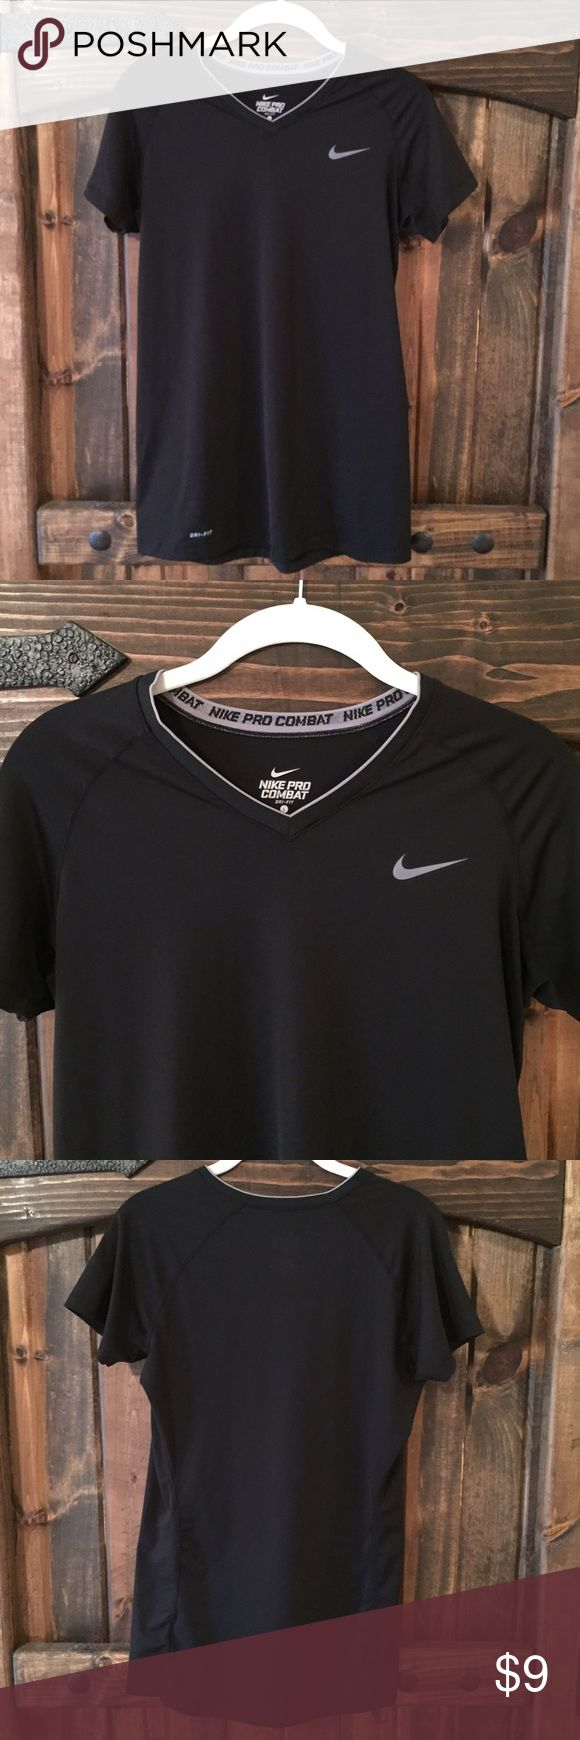 Nike pro combat fitted workout tee size L Nike pro dri-fit workout tee, black, size L. Great condition. 84% polyester, 16% spandex Nike Tops Tees - Short Sleeve